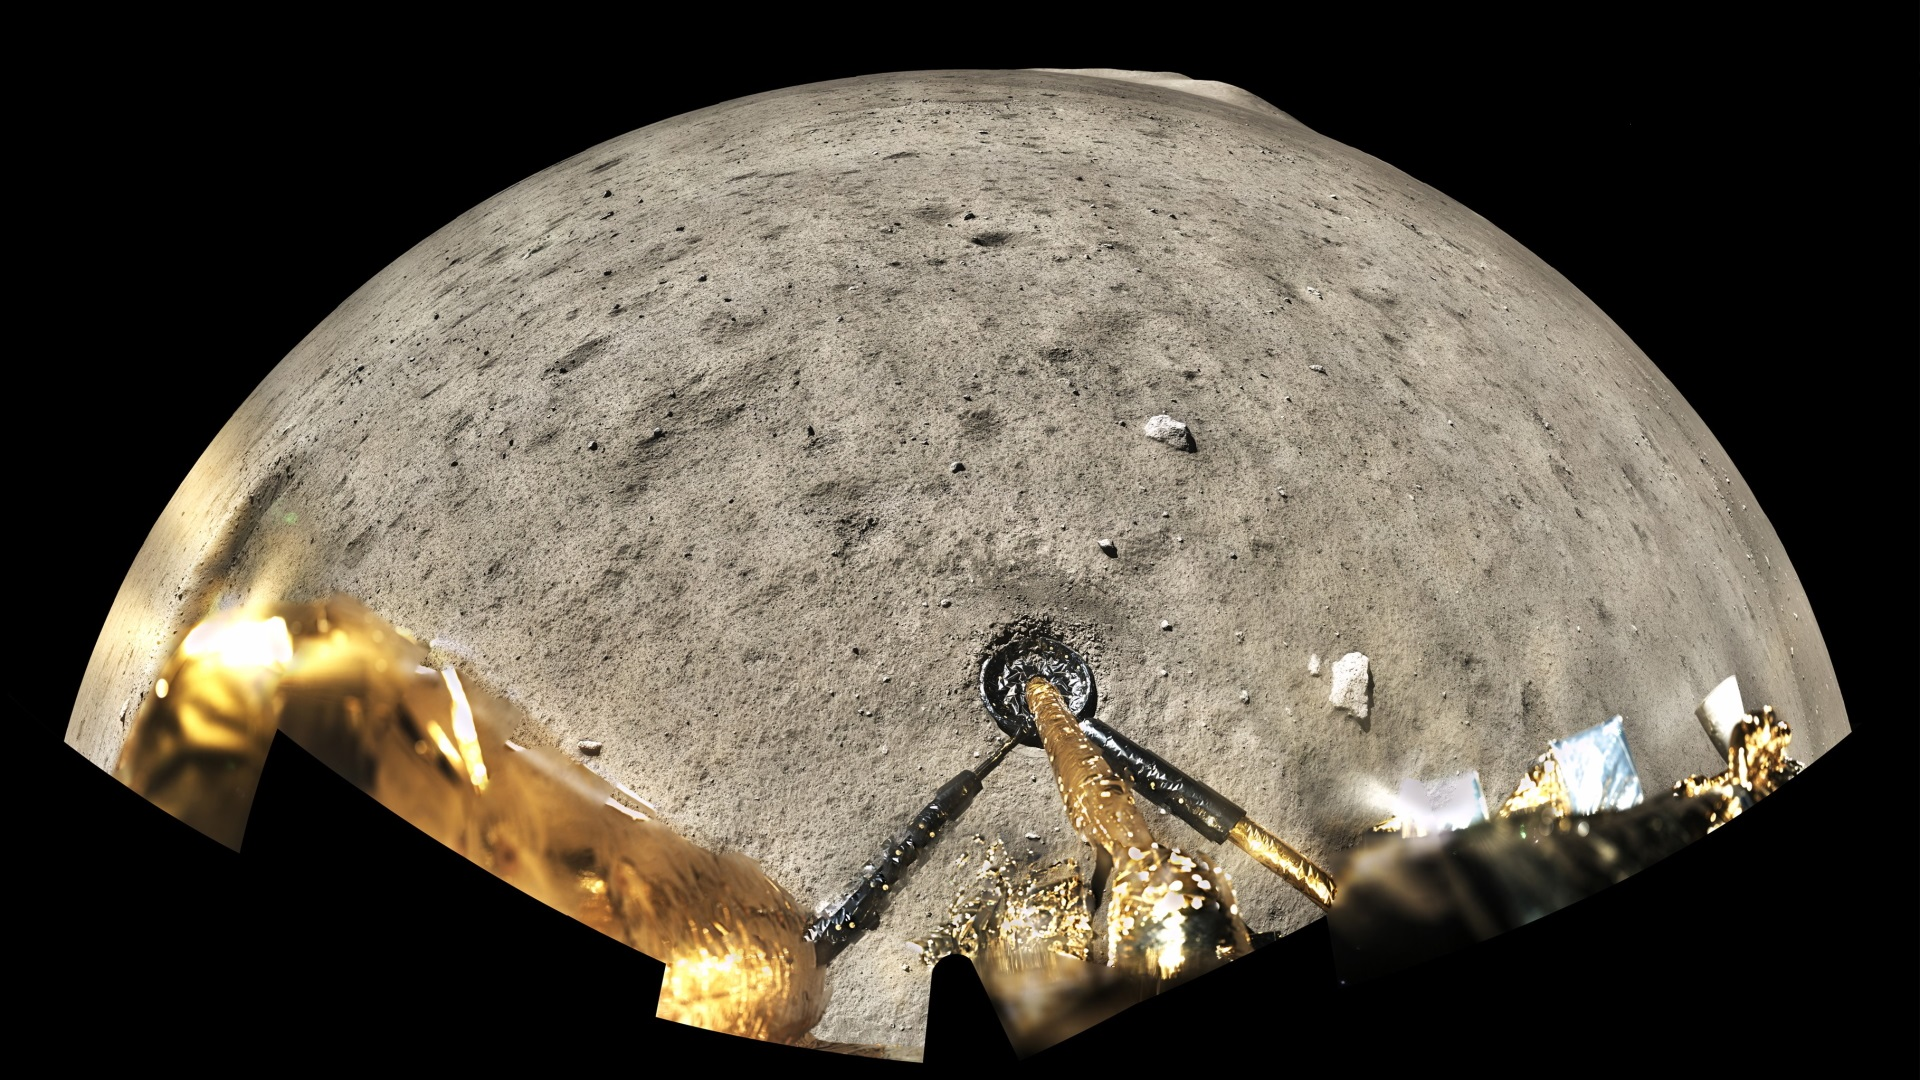 A panoramic shot of the lunar surface taken by the camera of the Chang'e-5 lander. Credit: CLEP